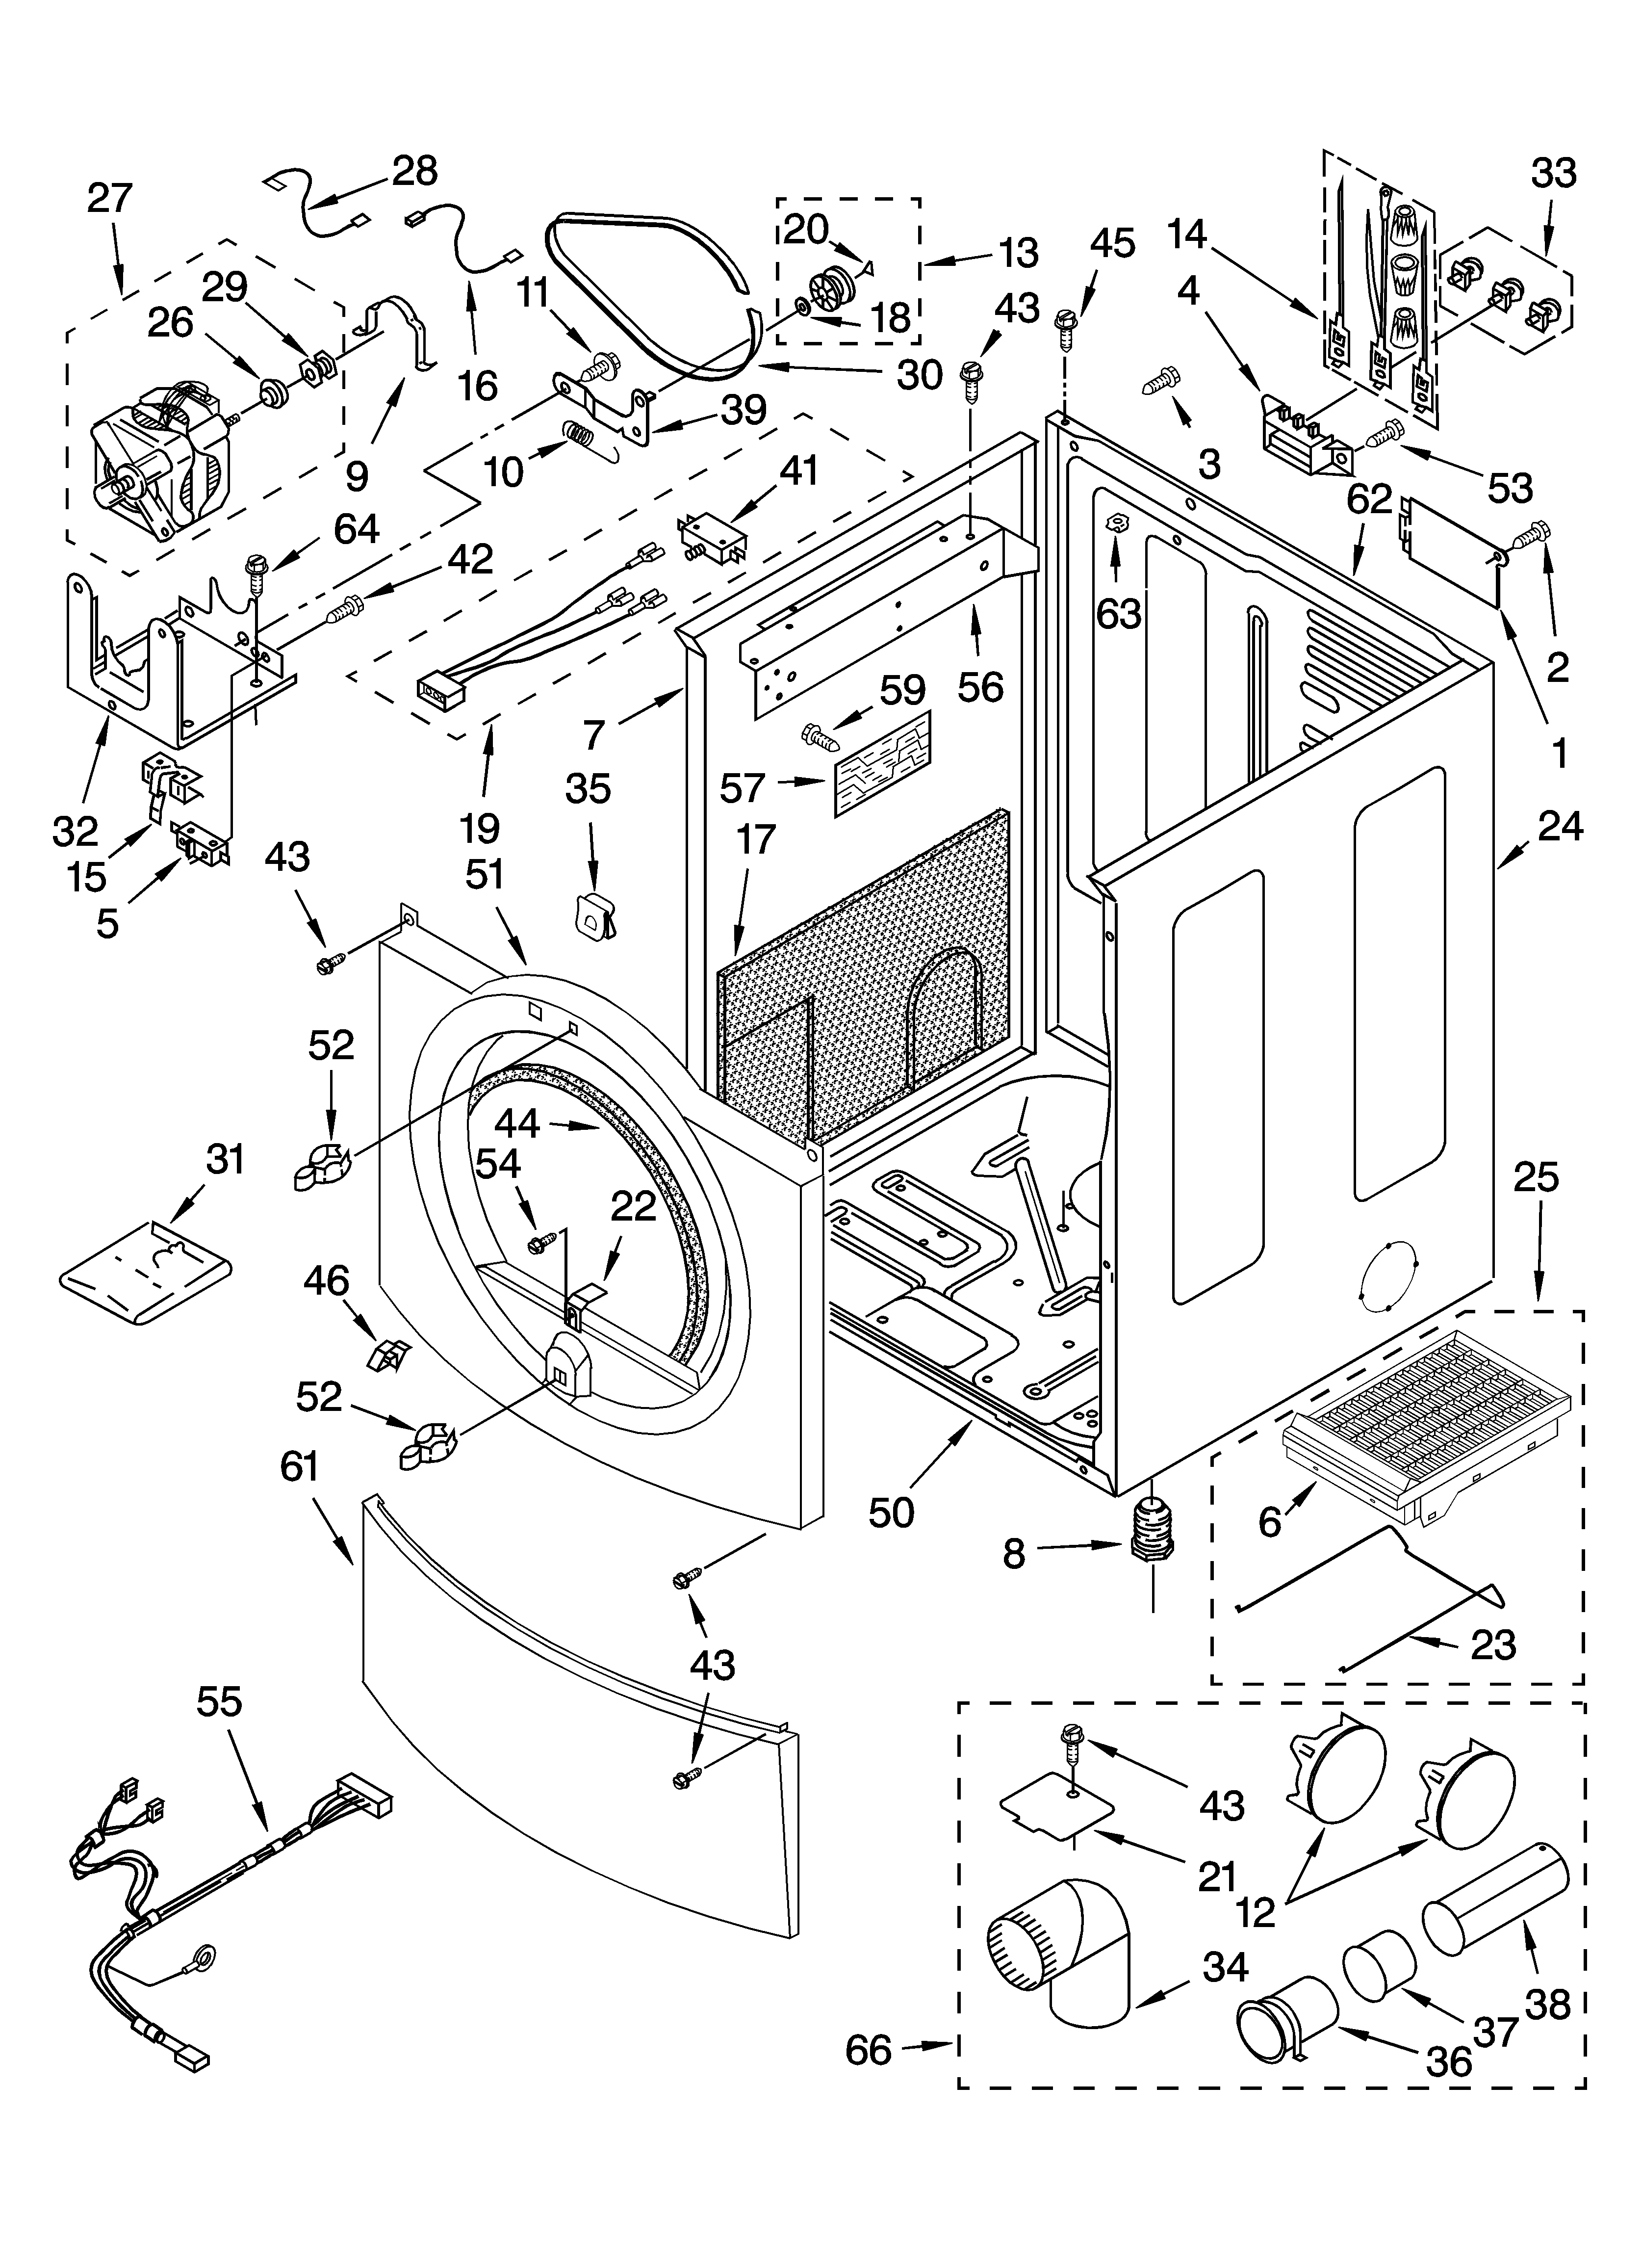 kenmore 90 series dryer parts diagram running lights circuit elite model 11085862400 residential genuine